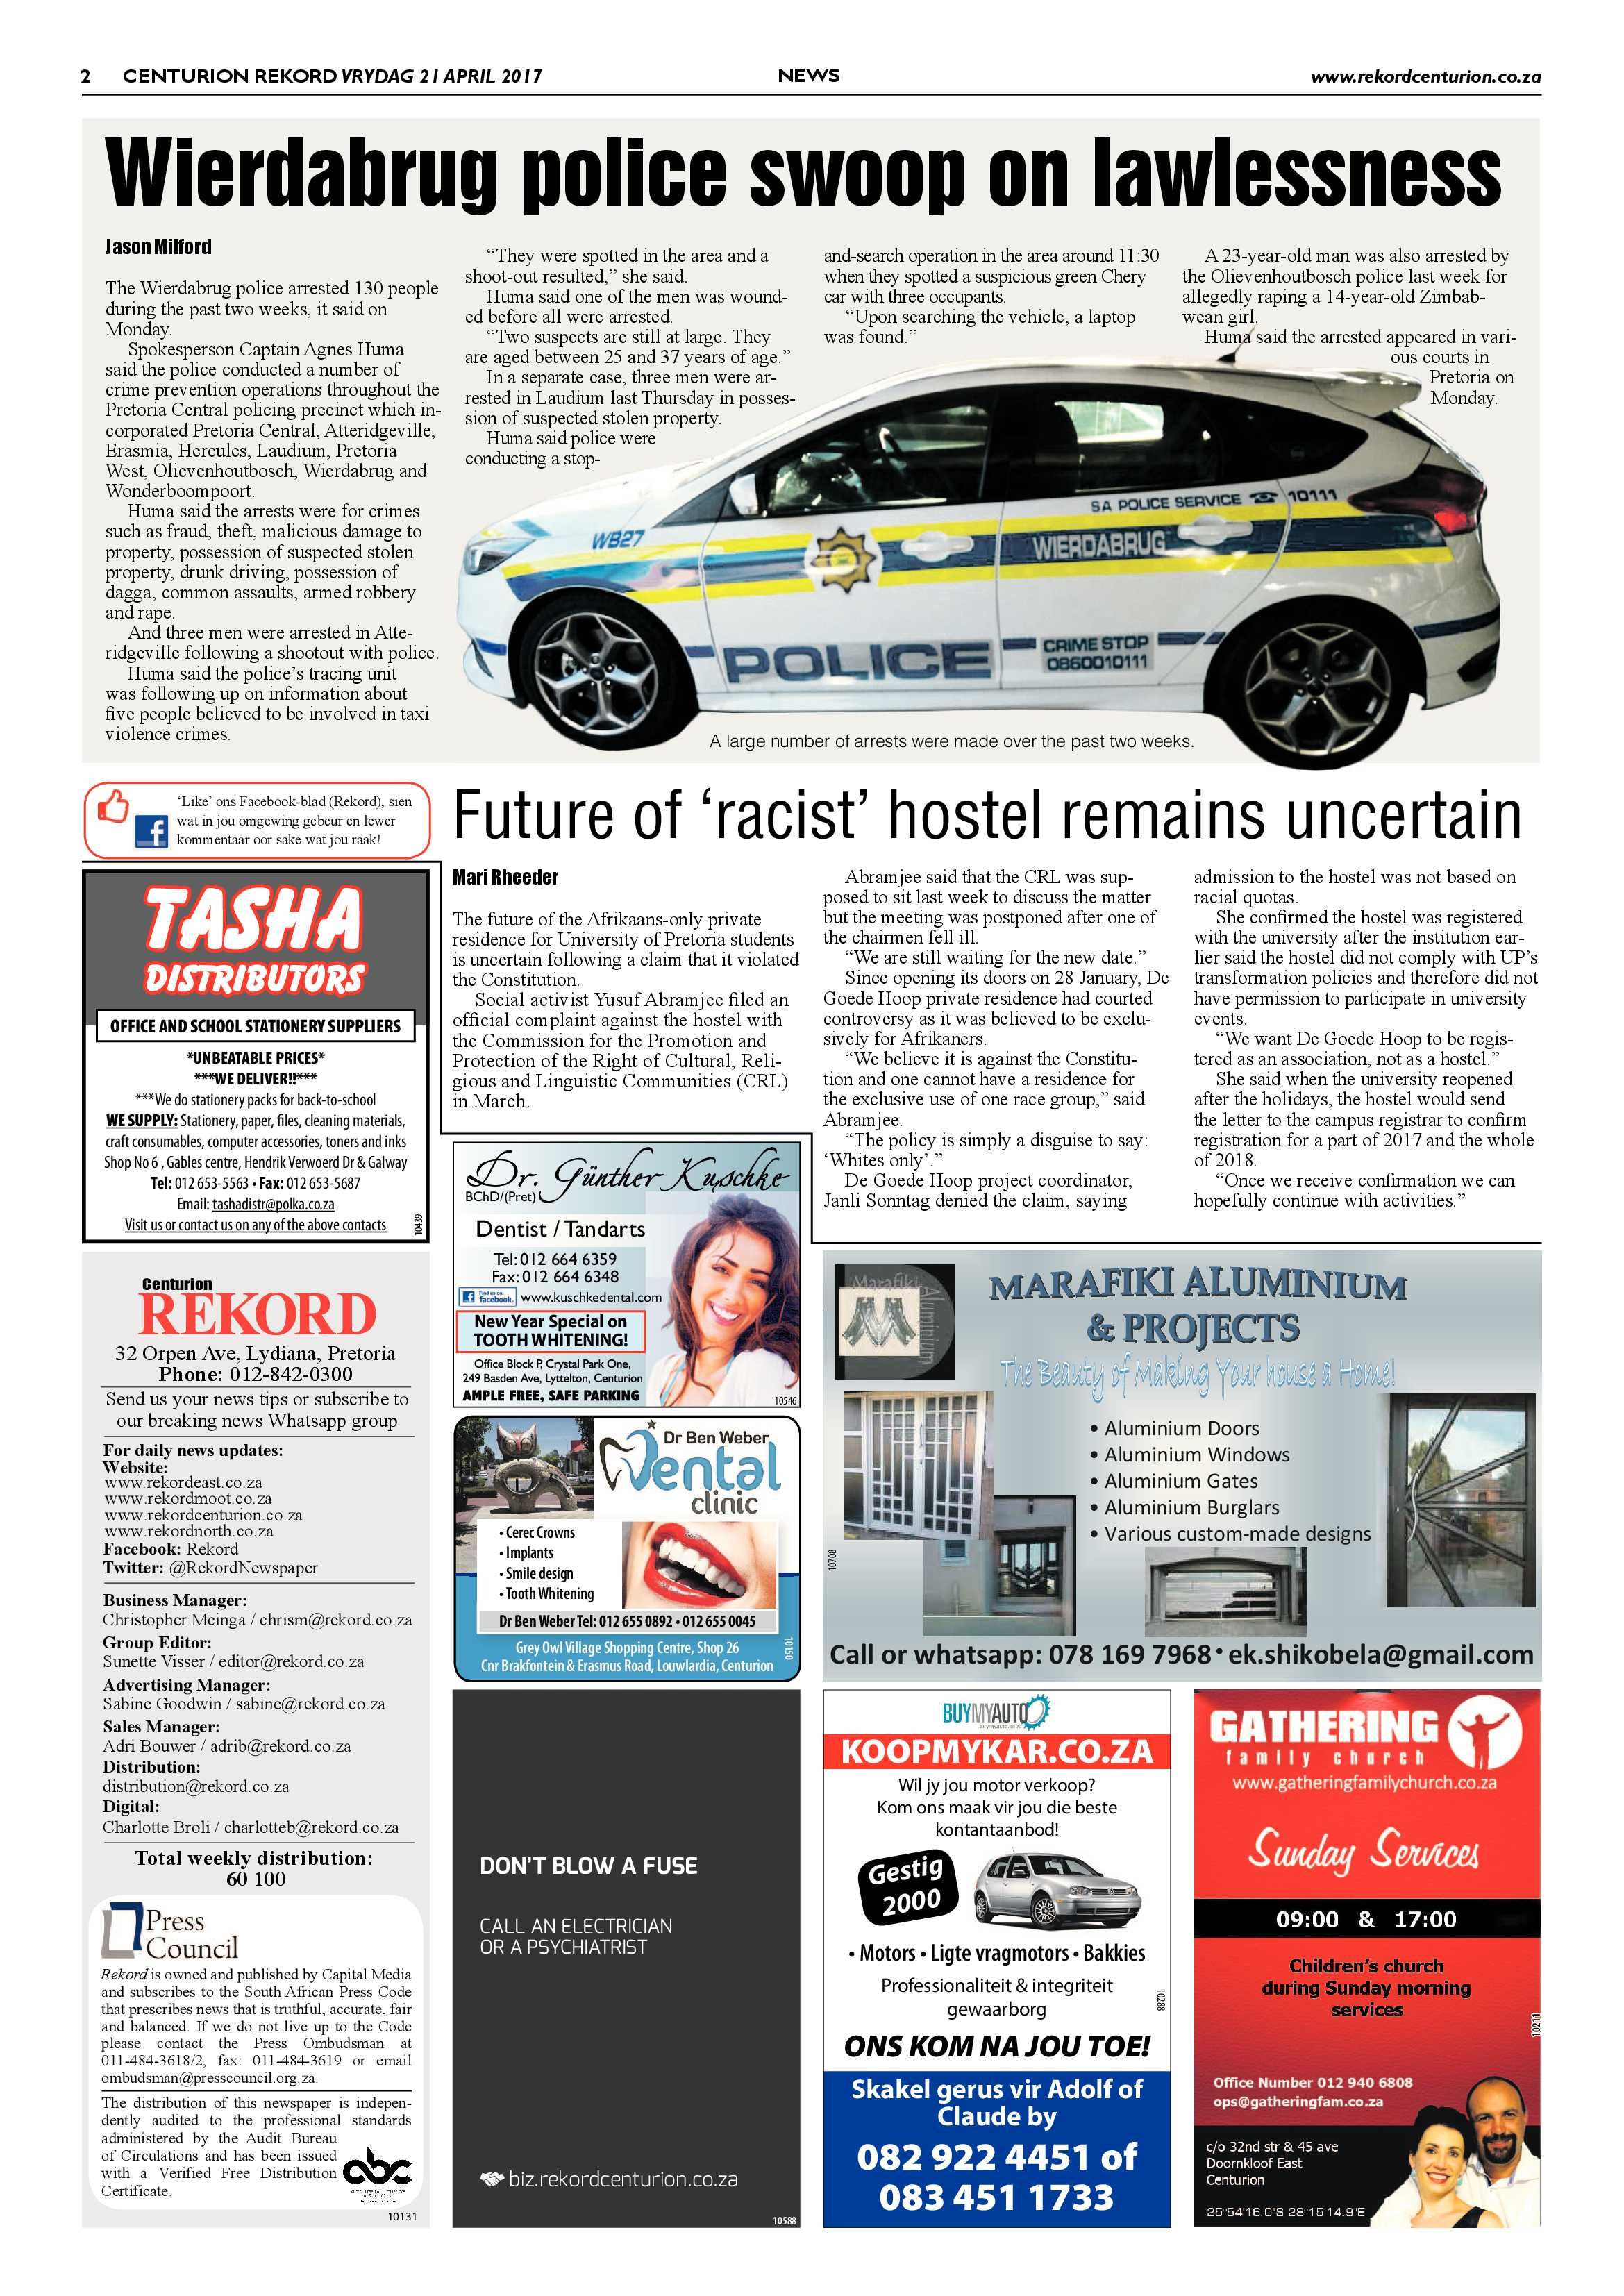 rekord-centurion-21-april-2017-epapers-page-2